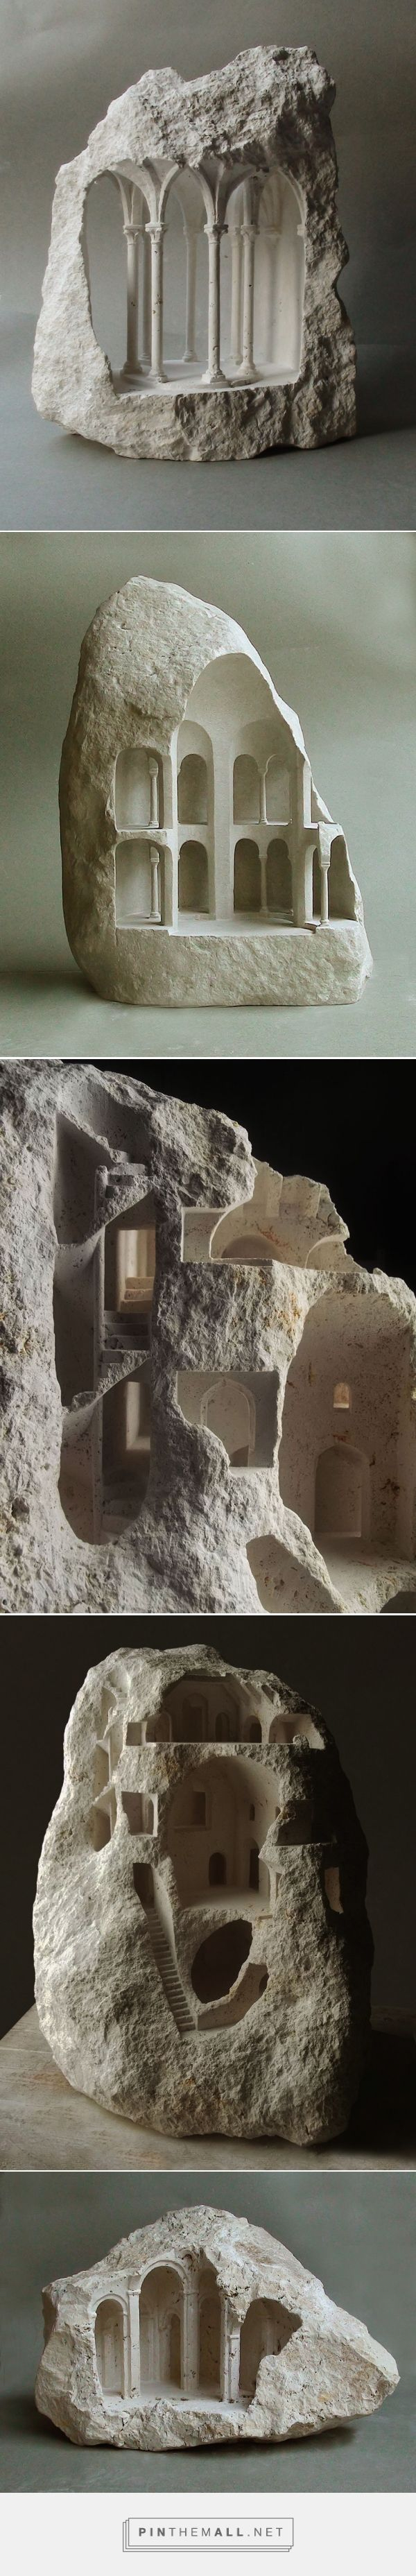 New Miniature Architectural Structures Carved Into Raw Stone by Matthew Simmonds   Colossal - created via https://pinthemall.net